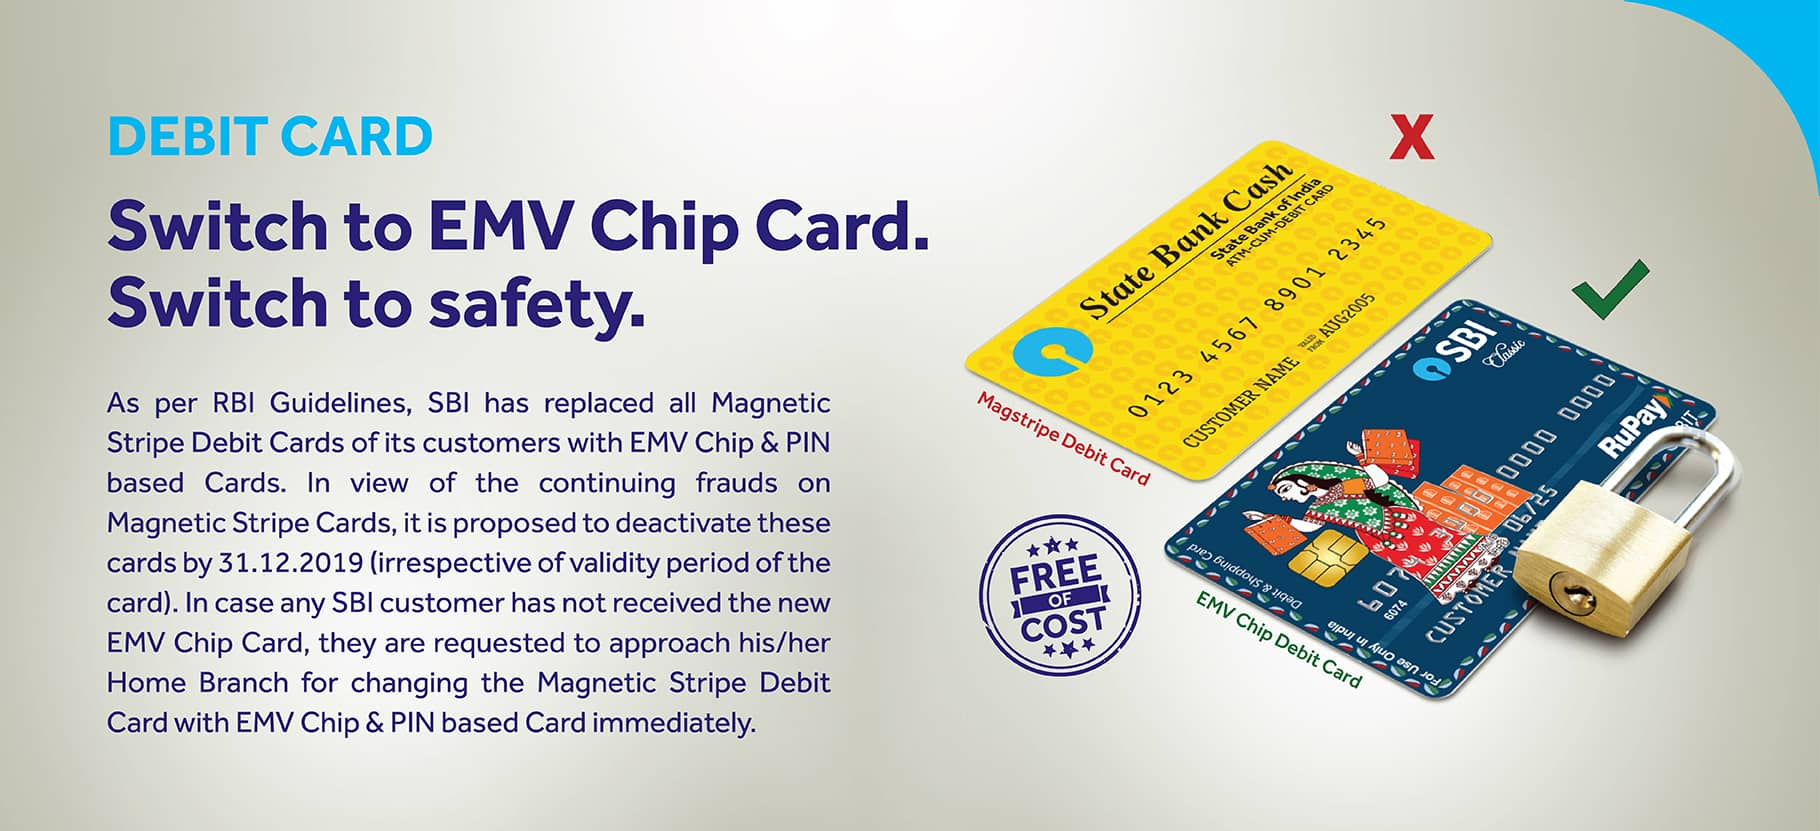 Debit Card Switch to  EMV Chip card switch to safety